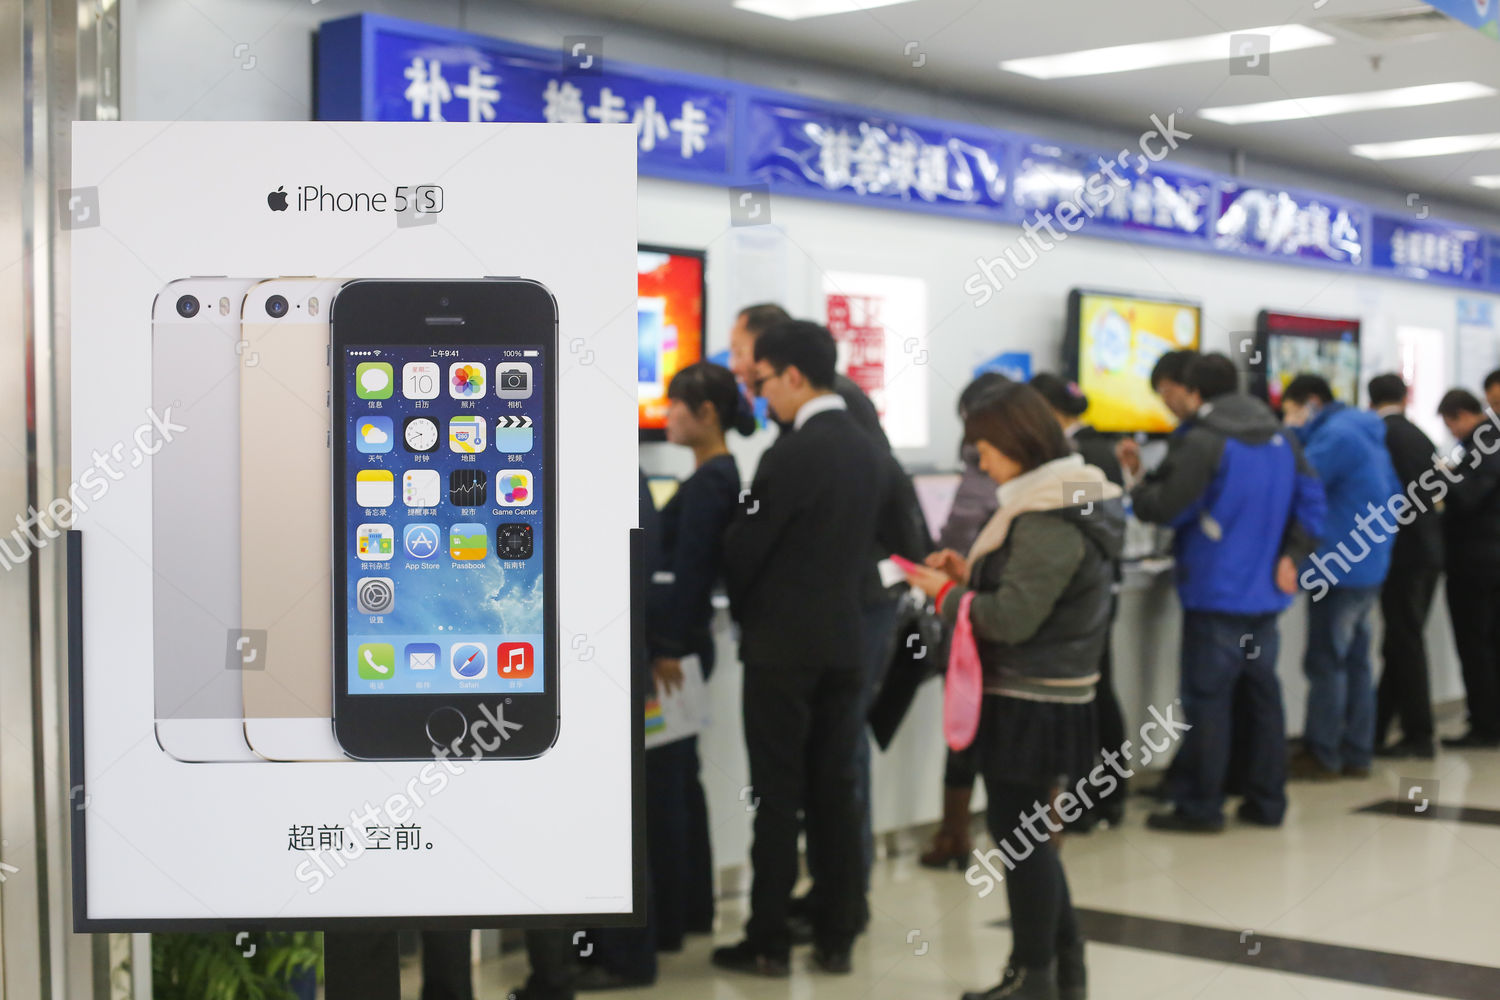 Advertisement New Iphone Five S Seen Inside Editorial Stock